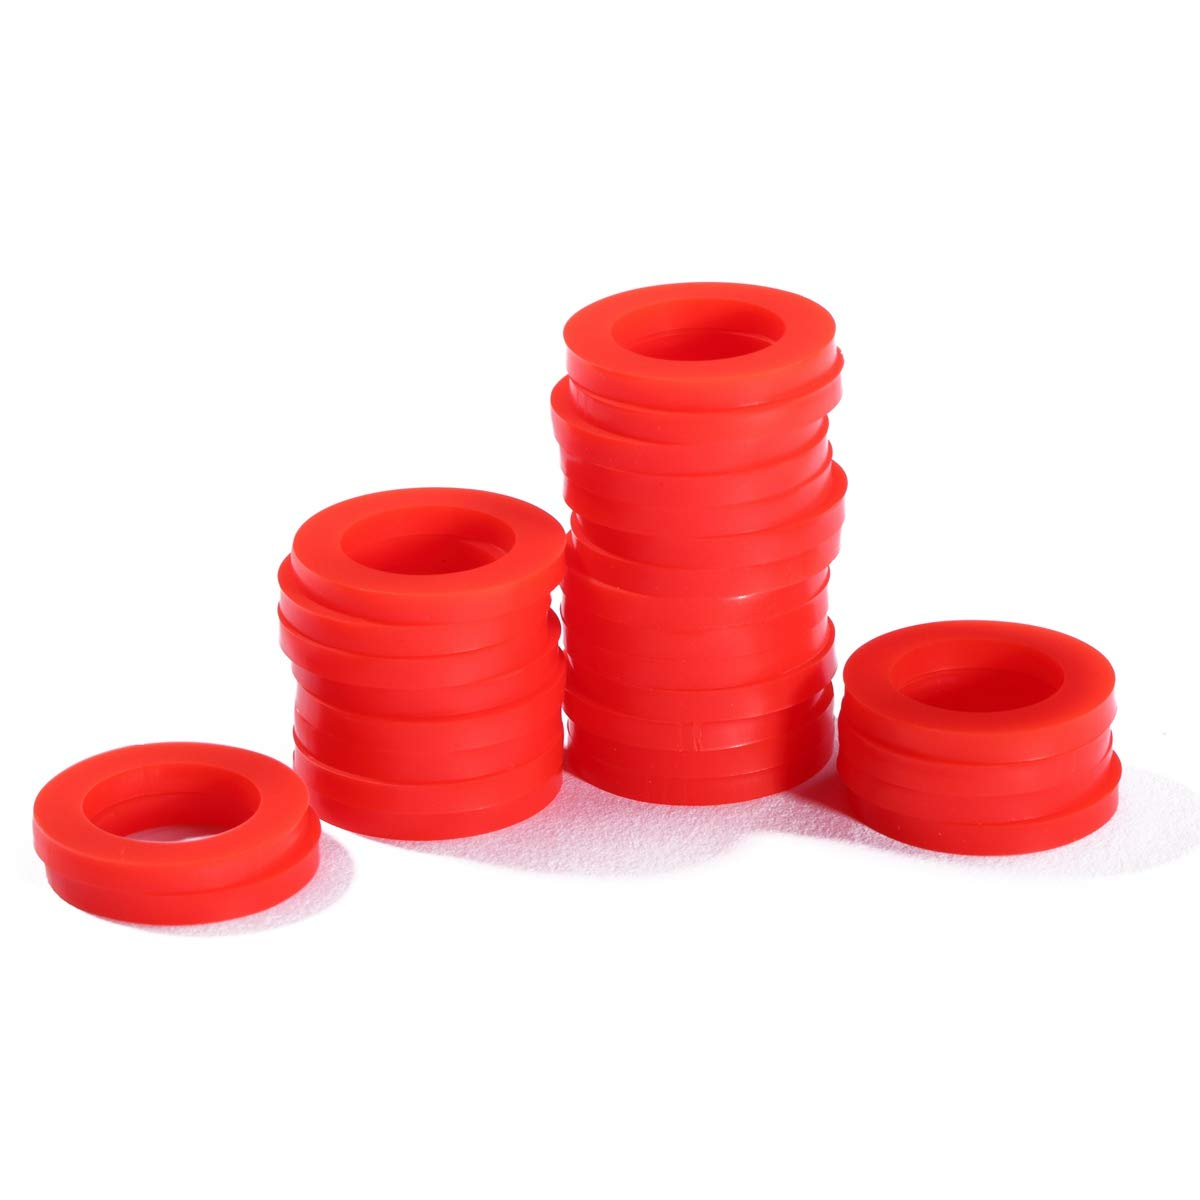 Litorange 50 PCS Leak Preventing Silicone (Better Than Rubber) Showerhead Gasket Washer, Red, 3/8 Inch x 3/4 Inch x 1/8 Inch.